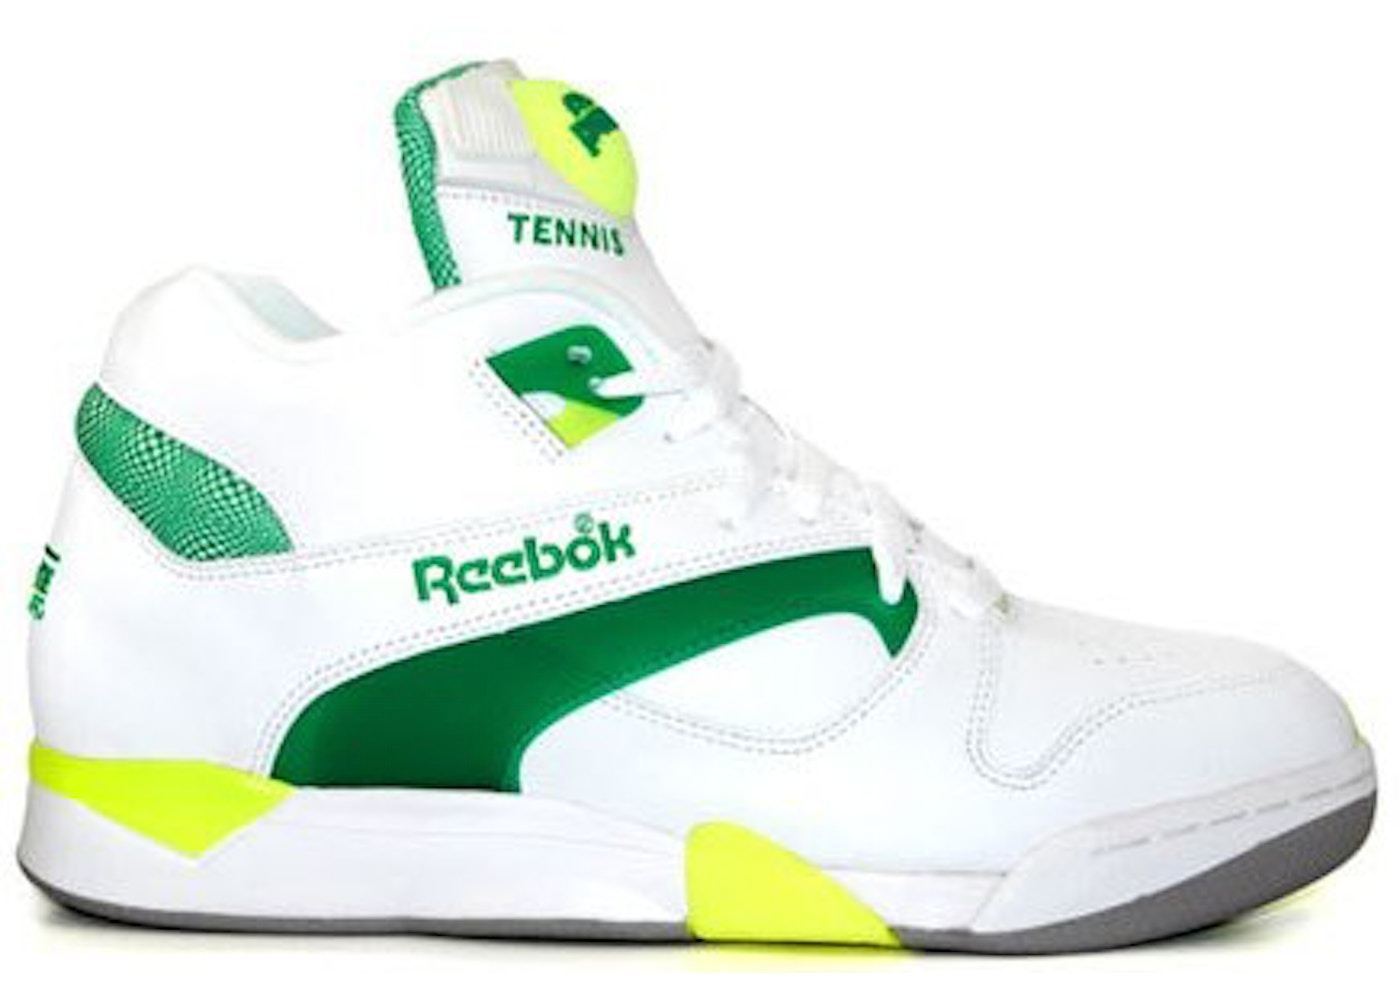 Reebok Court Victory Pump Michael Chang - J-14306 55e5a79cf